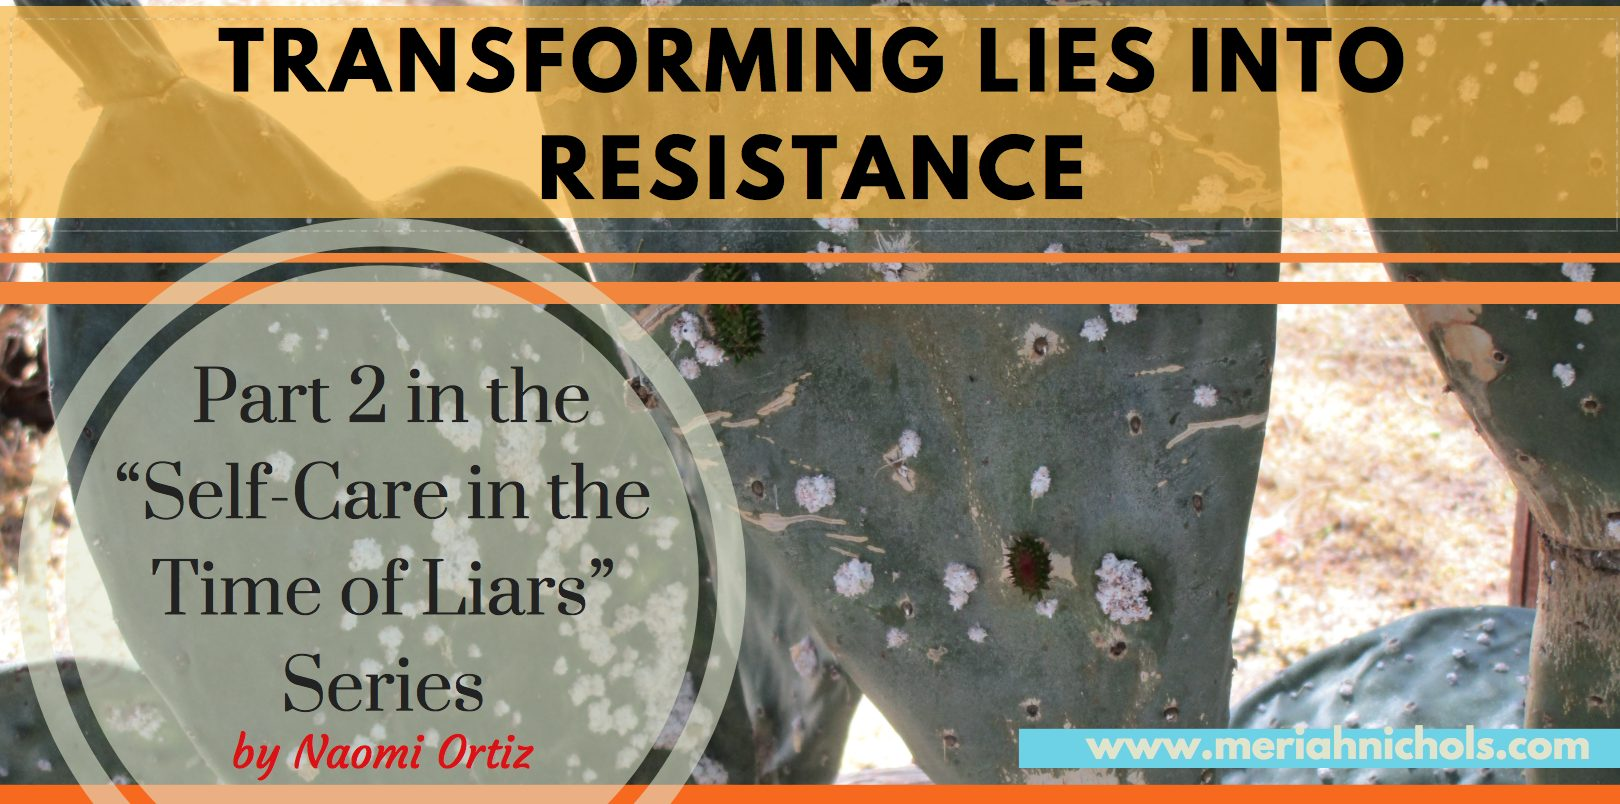 Transforming Lies into Resistance: Part 2 int he Self Care in the Time of Liars series by Naomi Ortiz